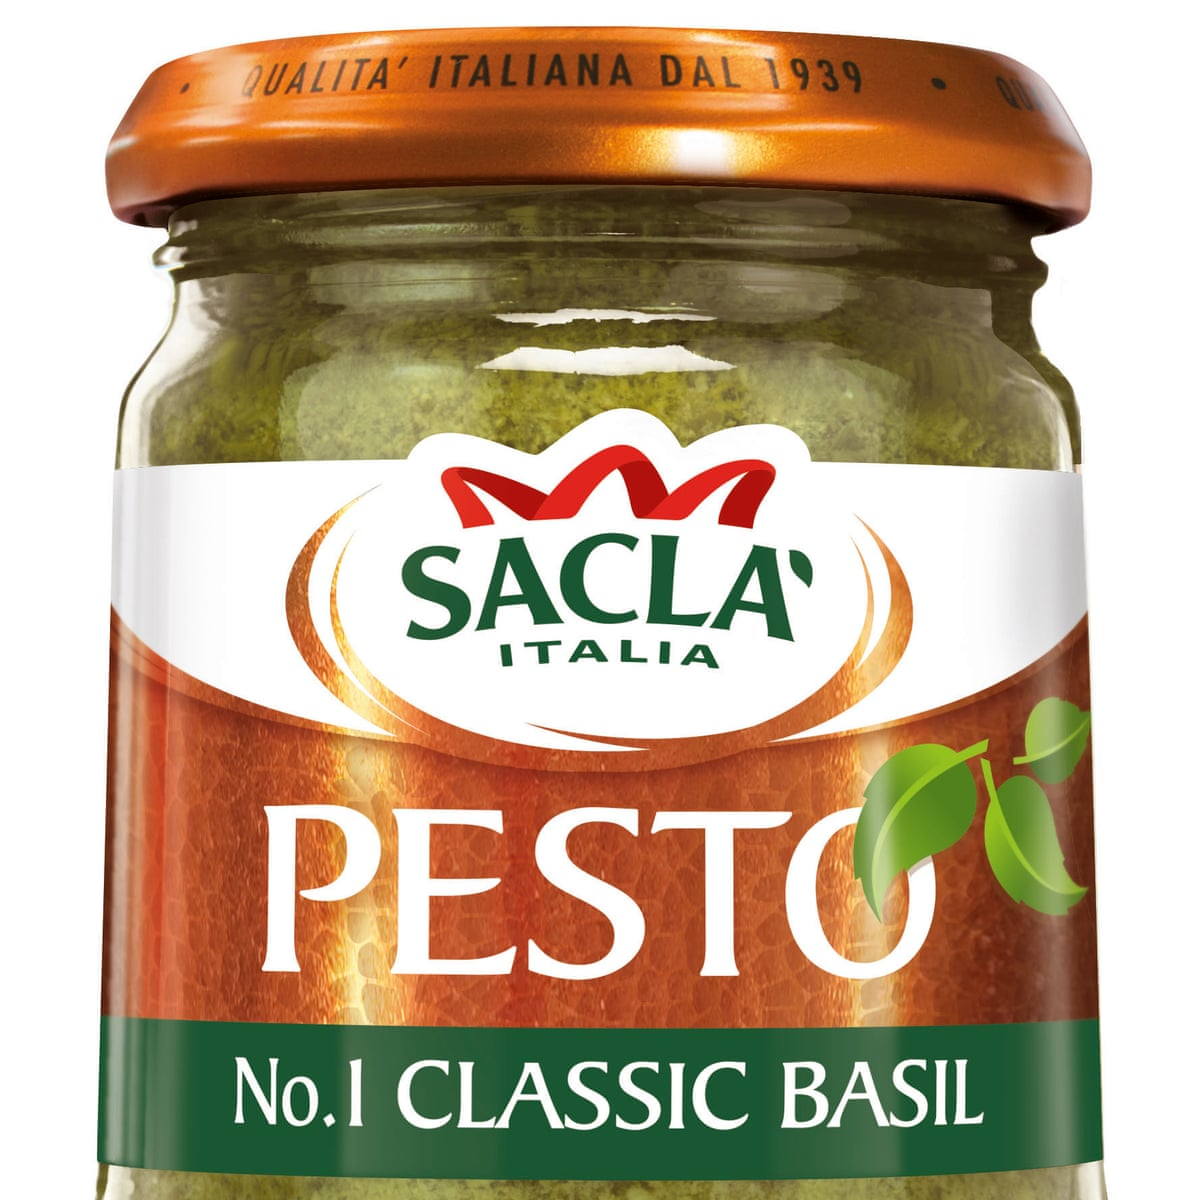 Sacla Recalls Pesto Products Over Peanut Contamination Fears Food The Guardian